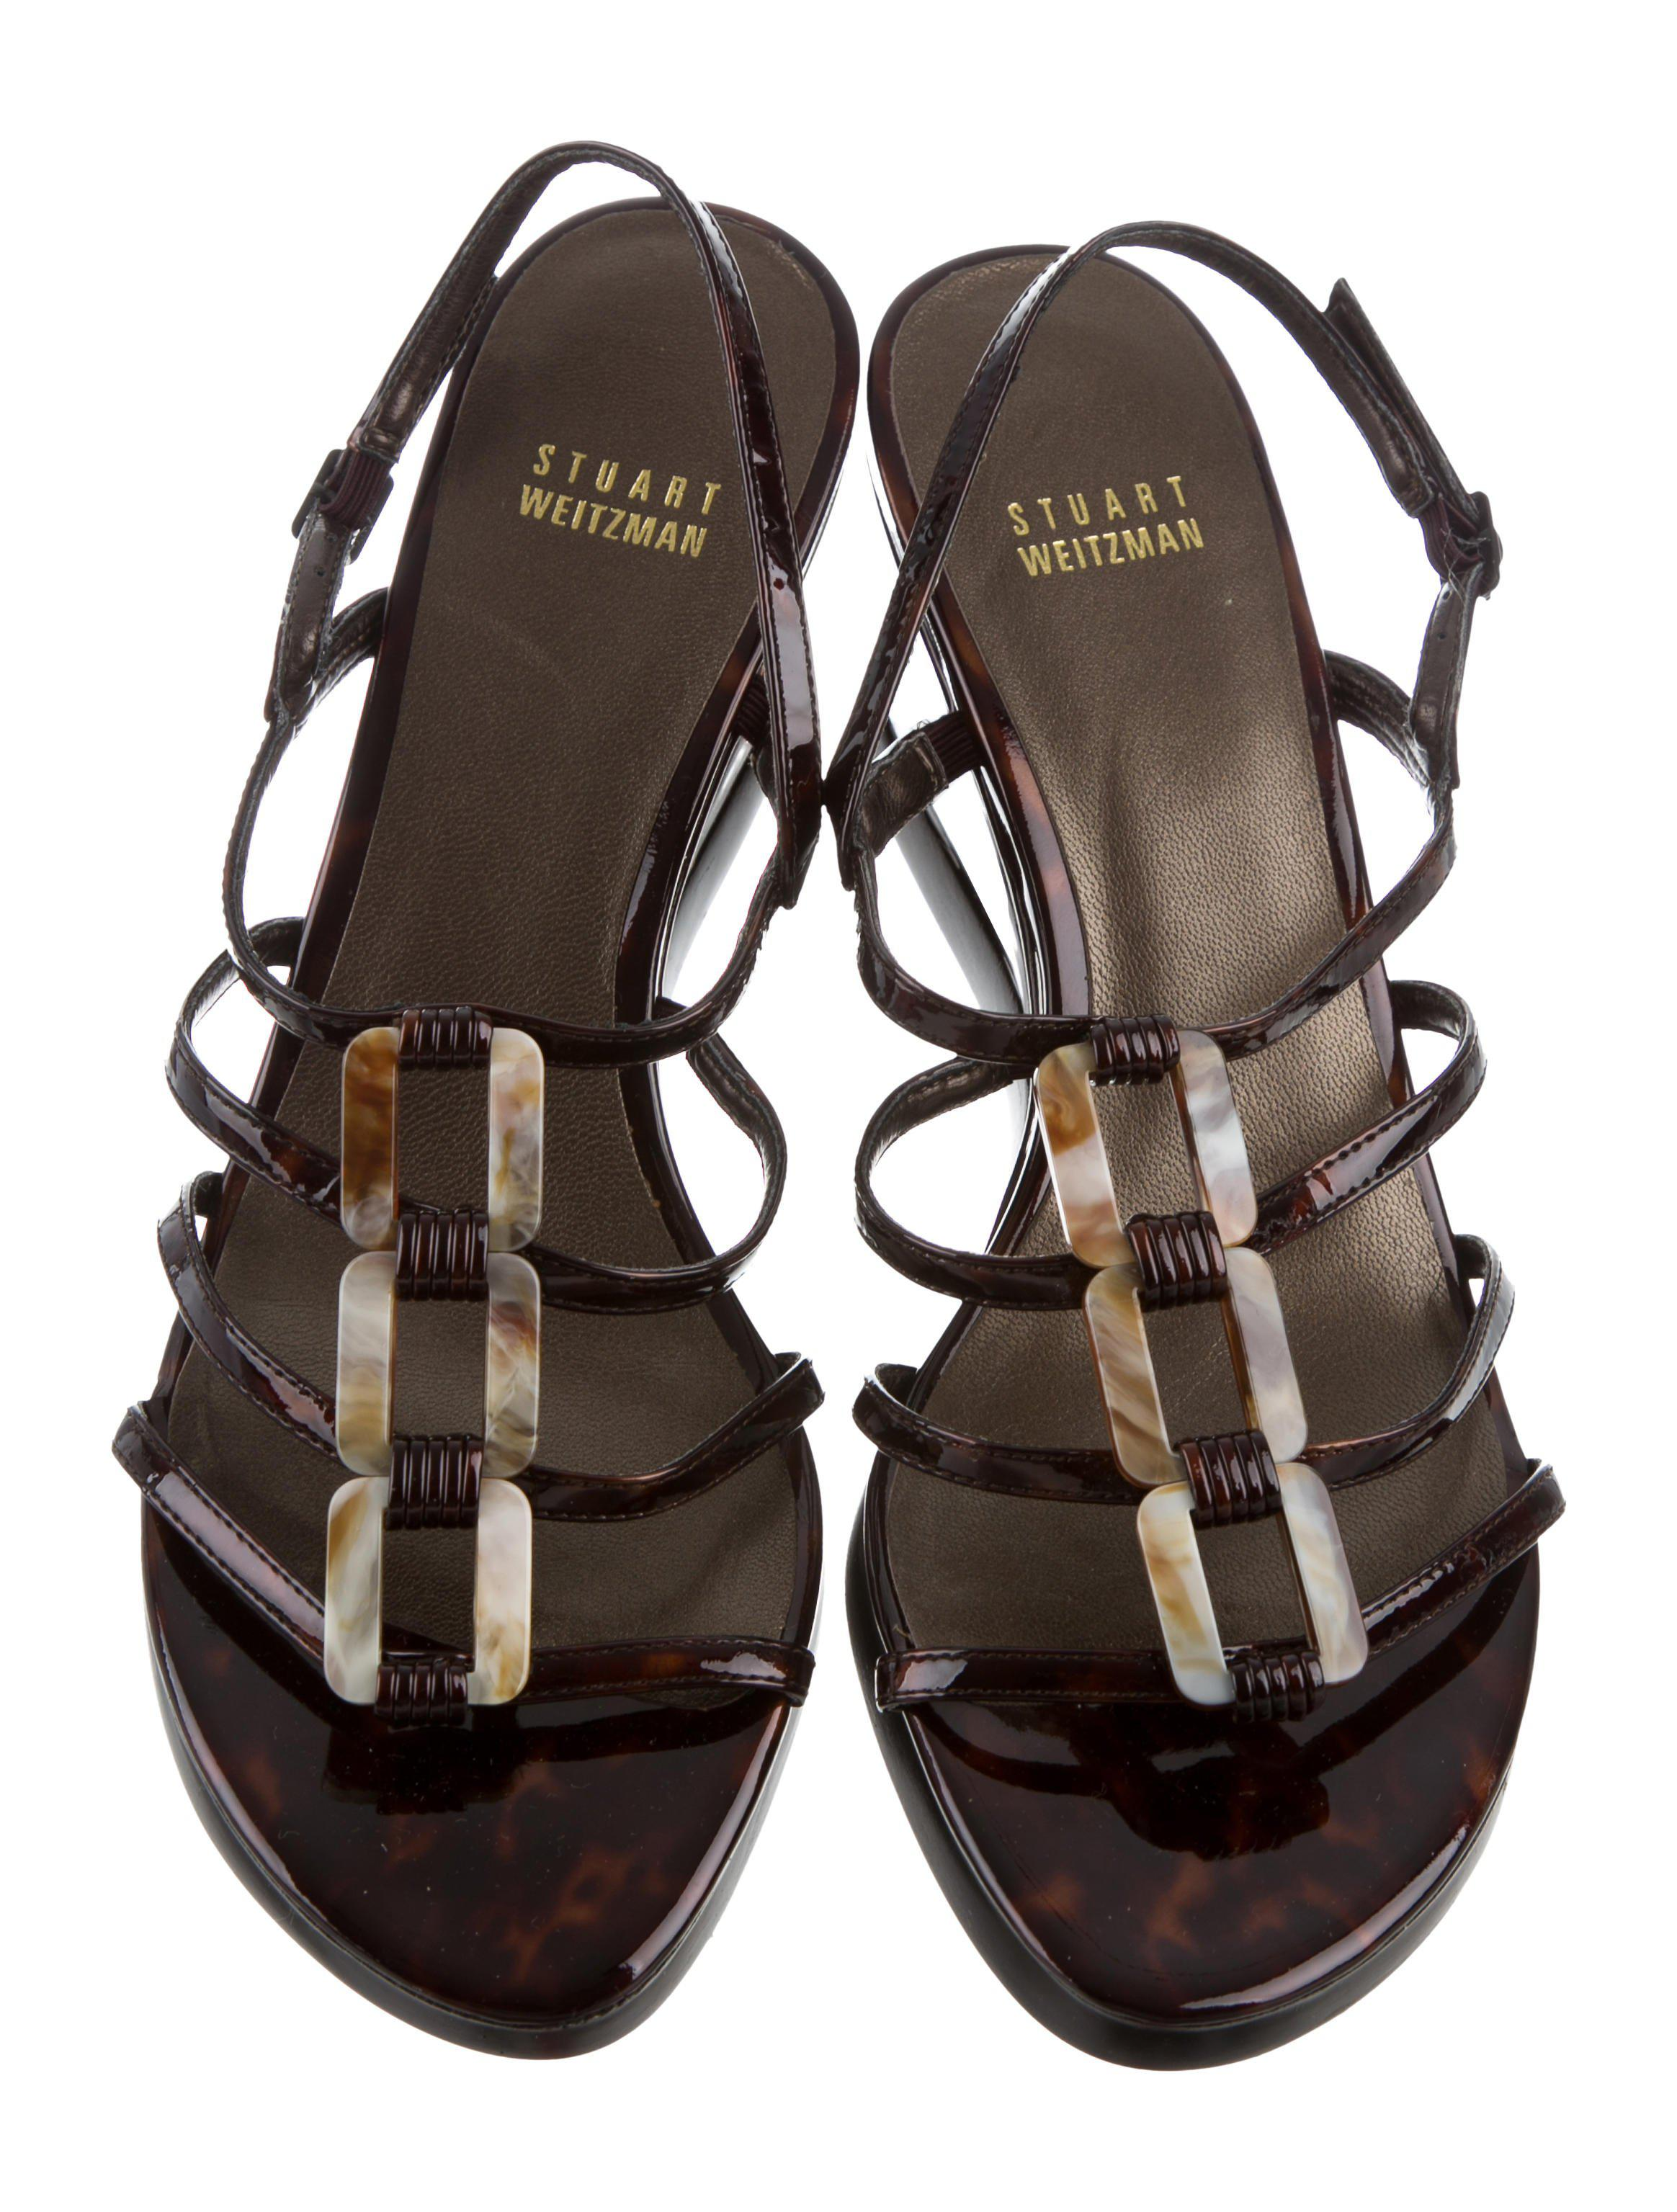 f642b02c219a0 Lyst - Stuart Weitzman Patent Leather Tortoise Shell Wedges in Brown